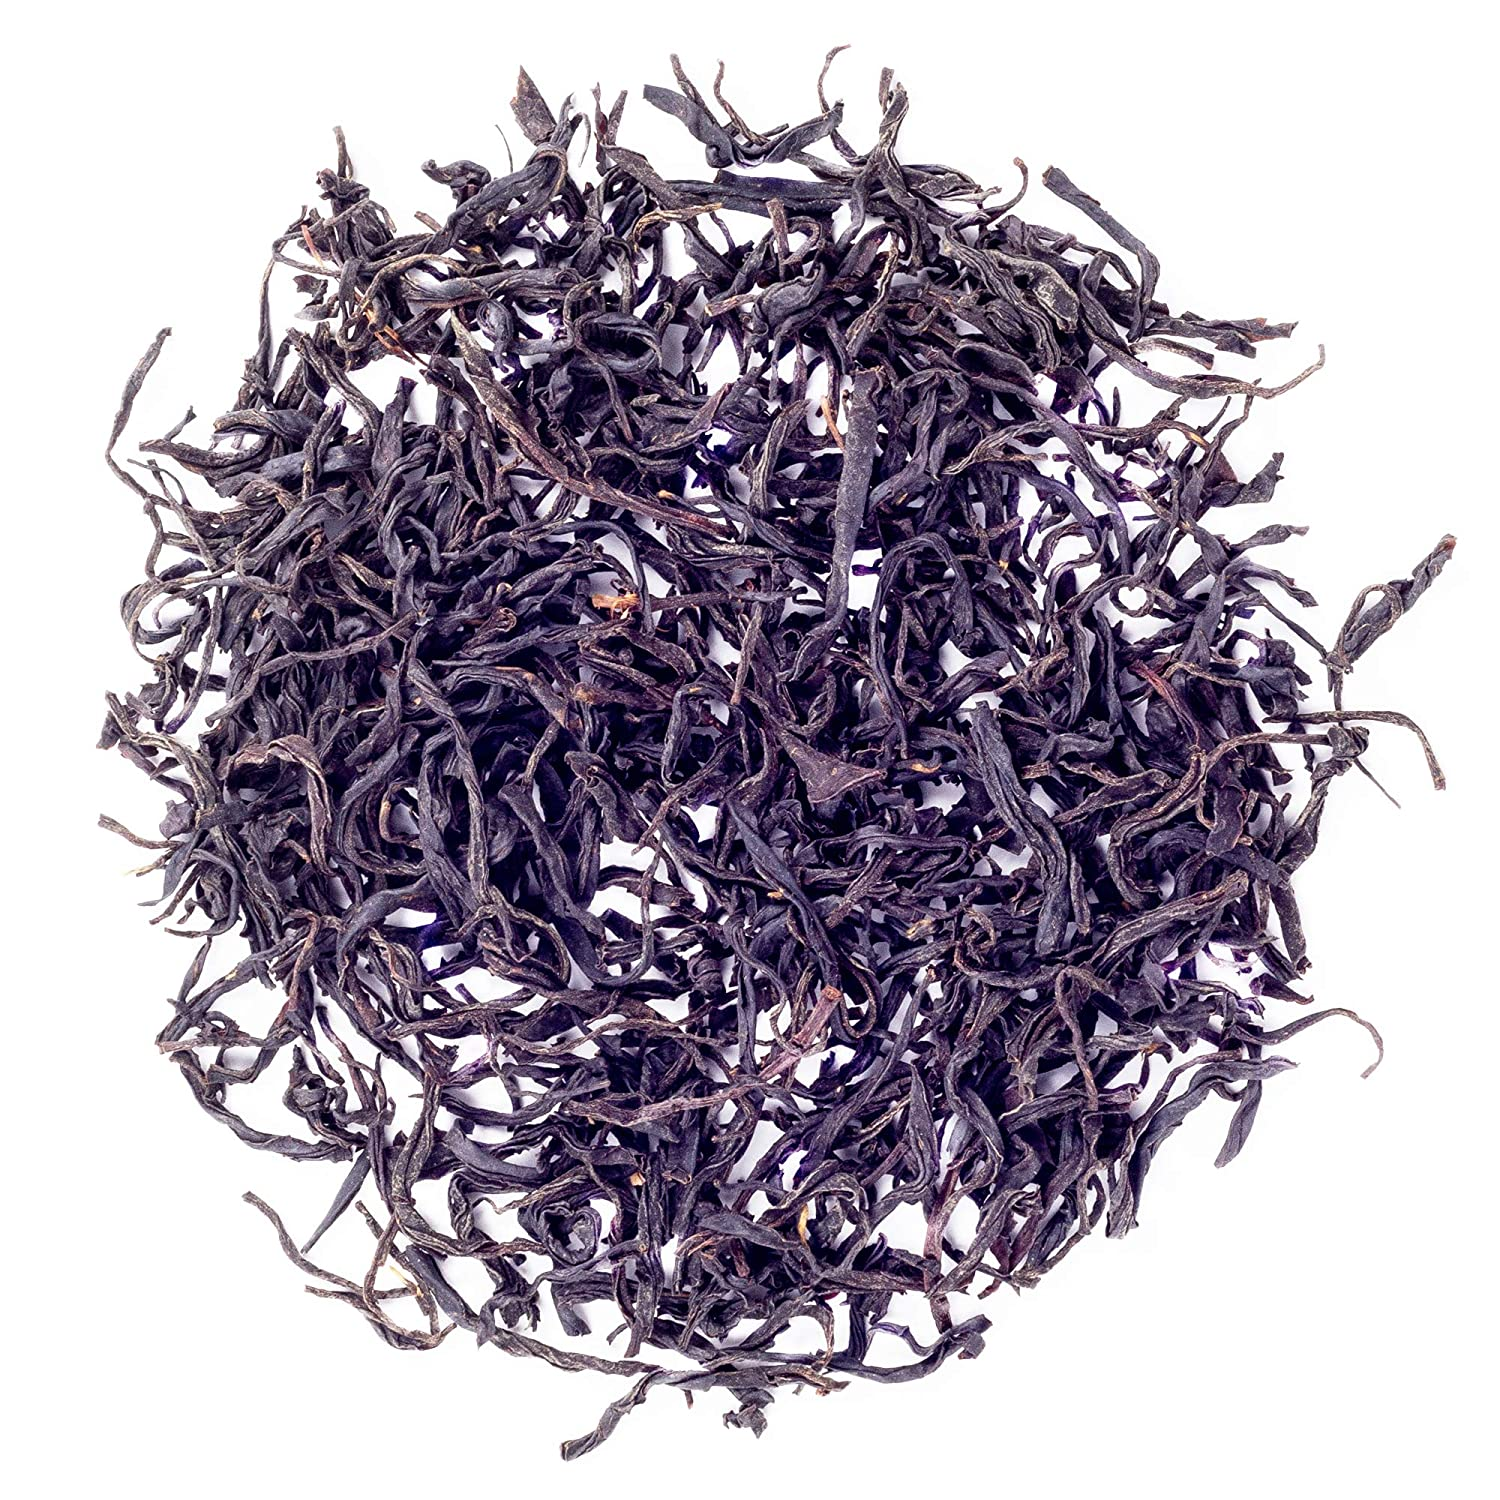 Pantenger Organic Keemun Black Tea Loose Leaf. 3.5 Ounces (50 servings). Keemun Mao Feng. Organic Black Tea Loose Leaf. USDA ORGANIC.